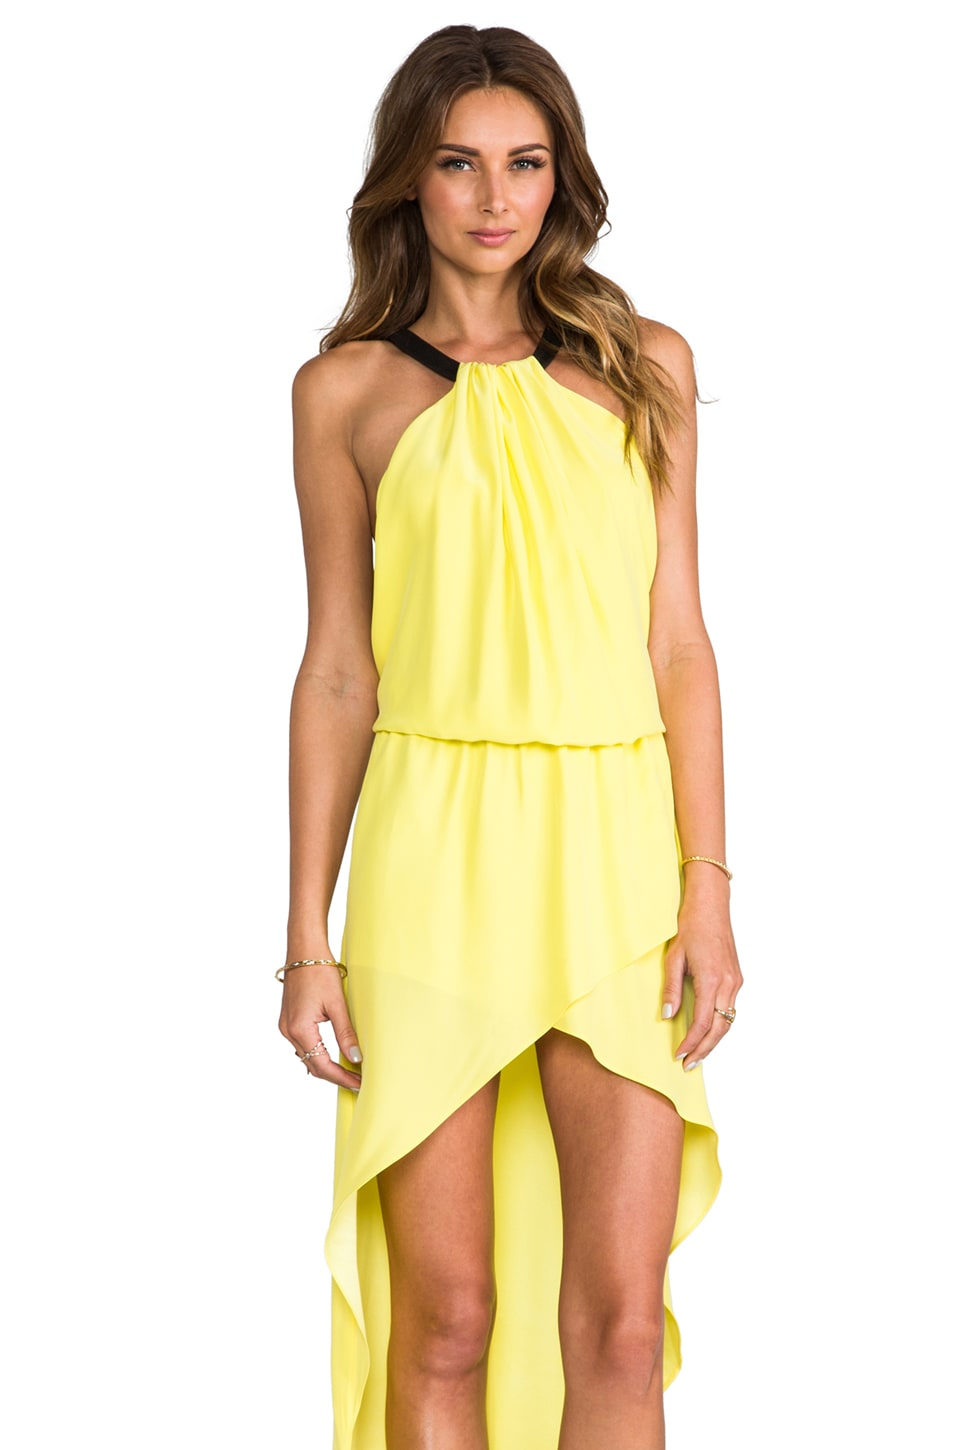 Alexis Swift Dress in Yellow Black